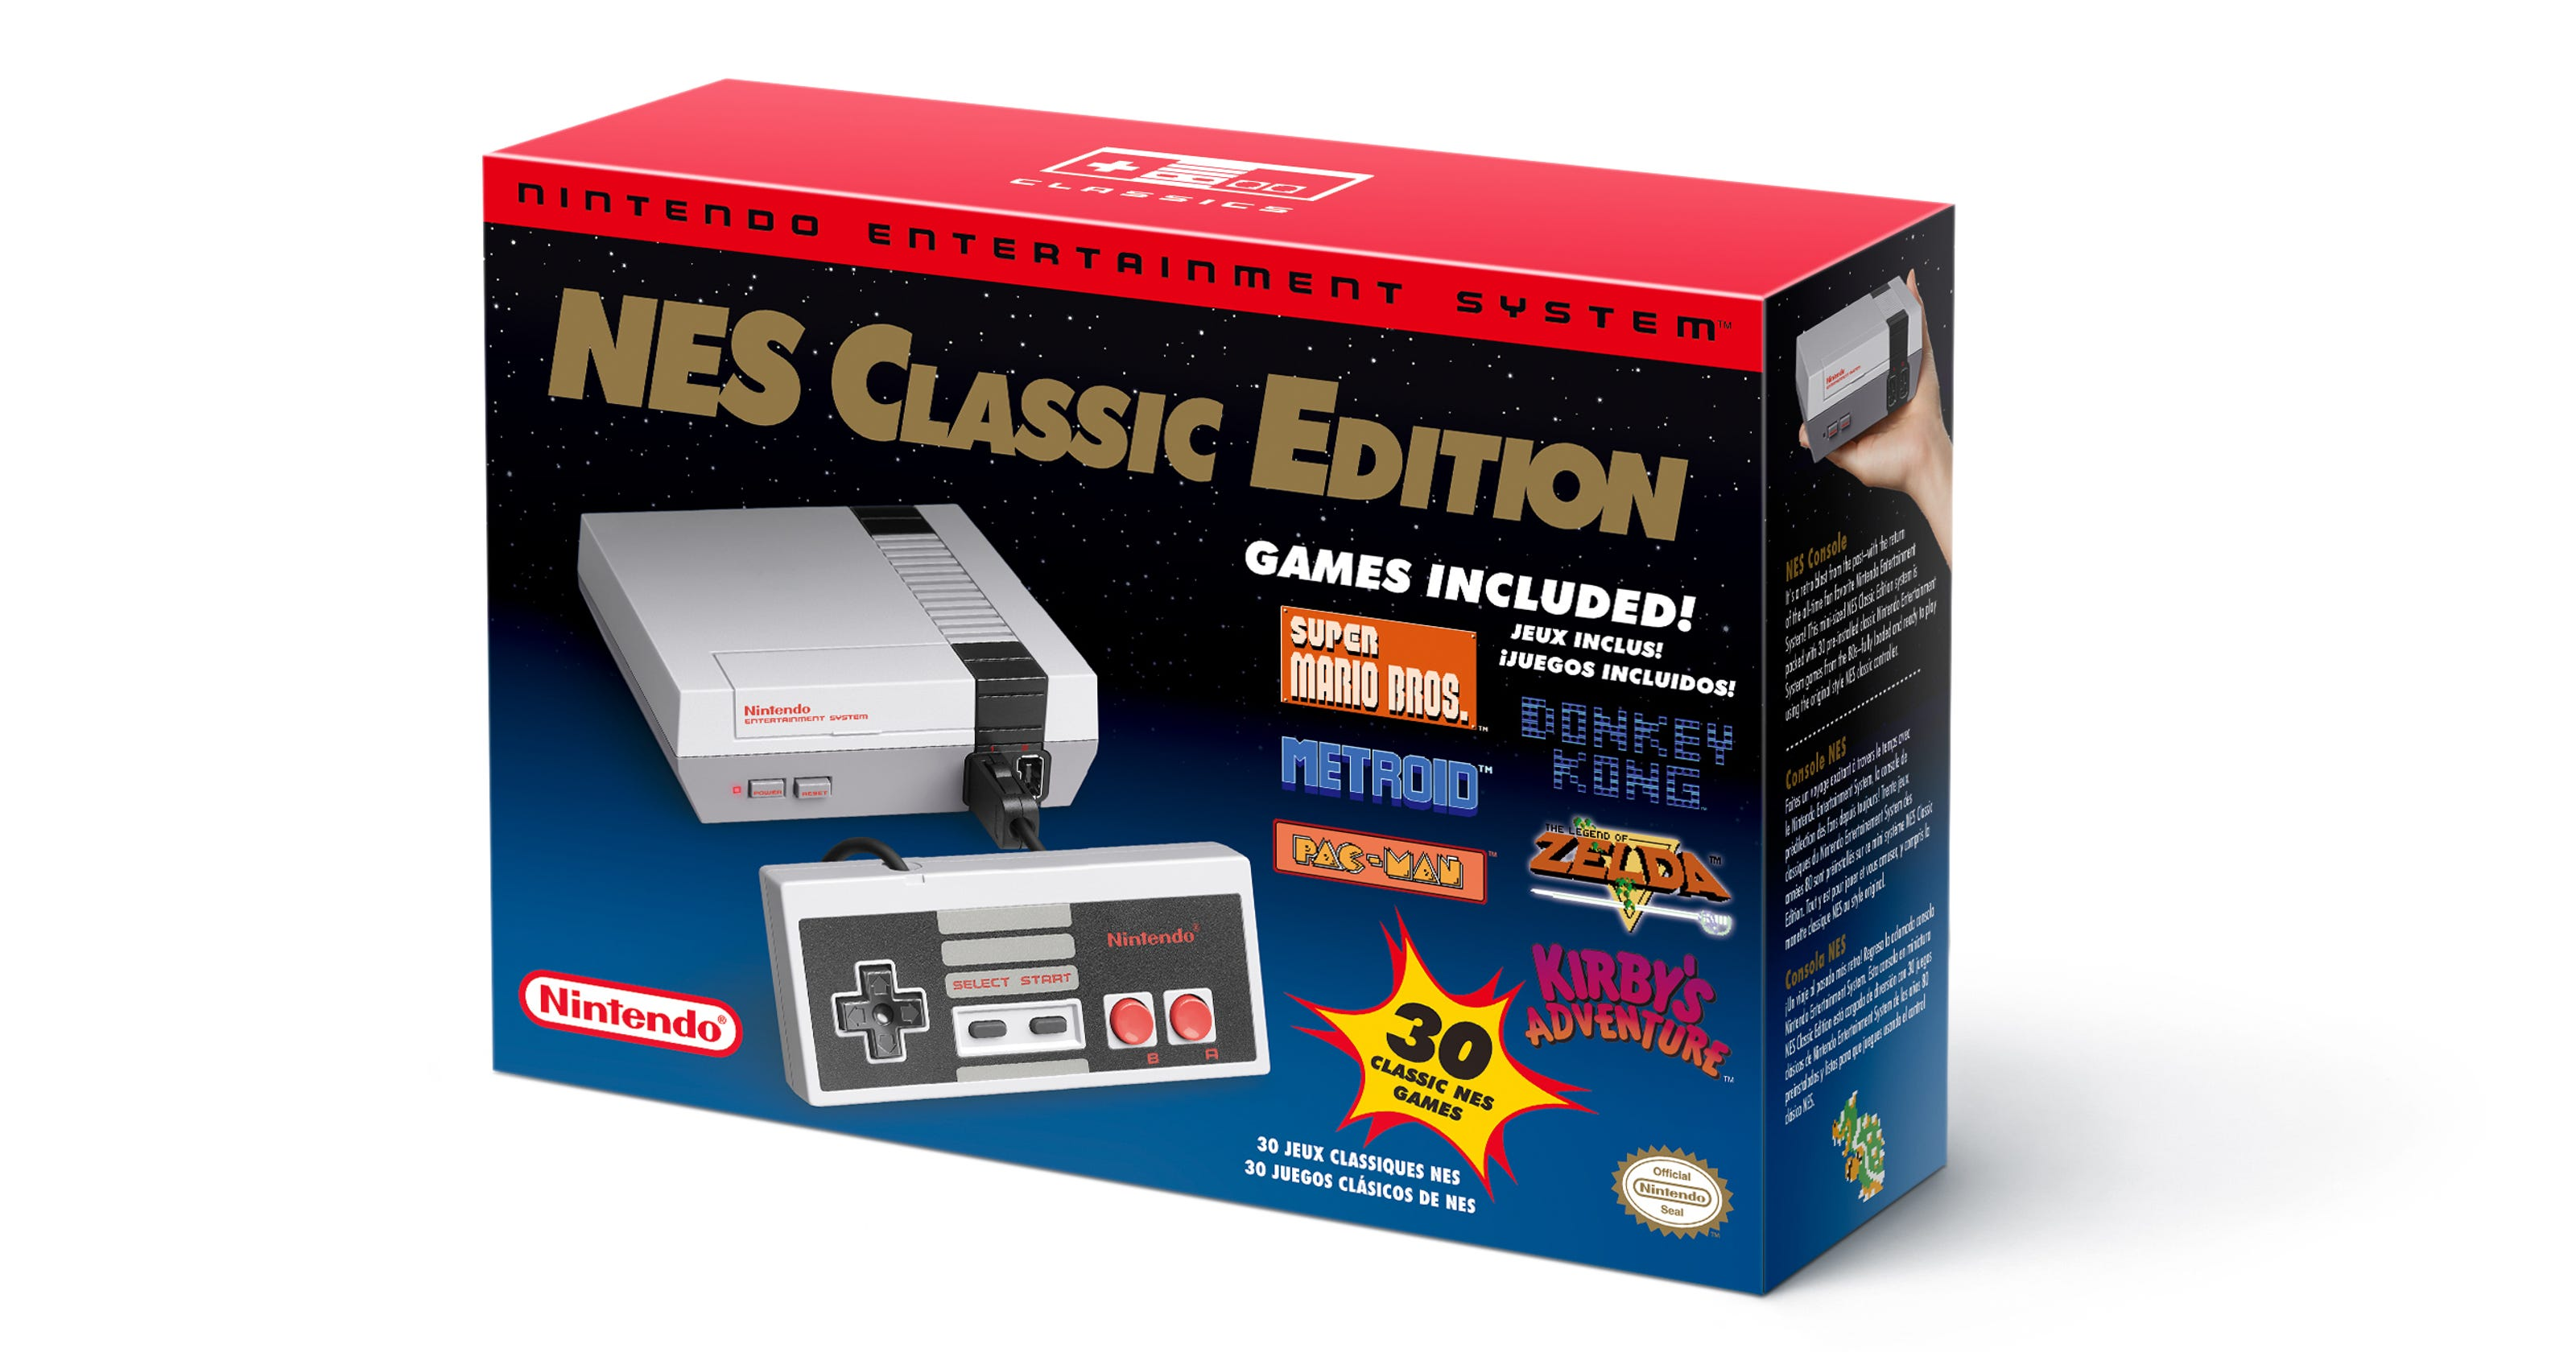 Nintendo S Nes Classic Will Return To Stores On June 29